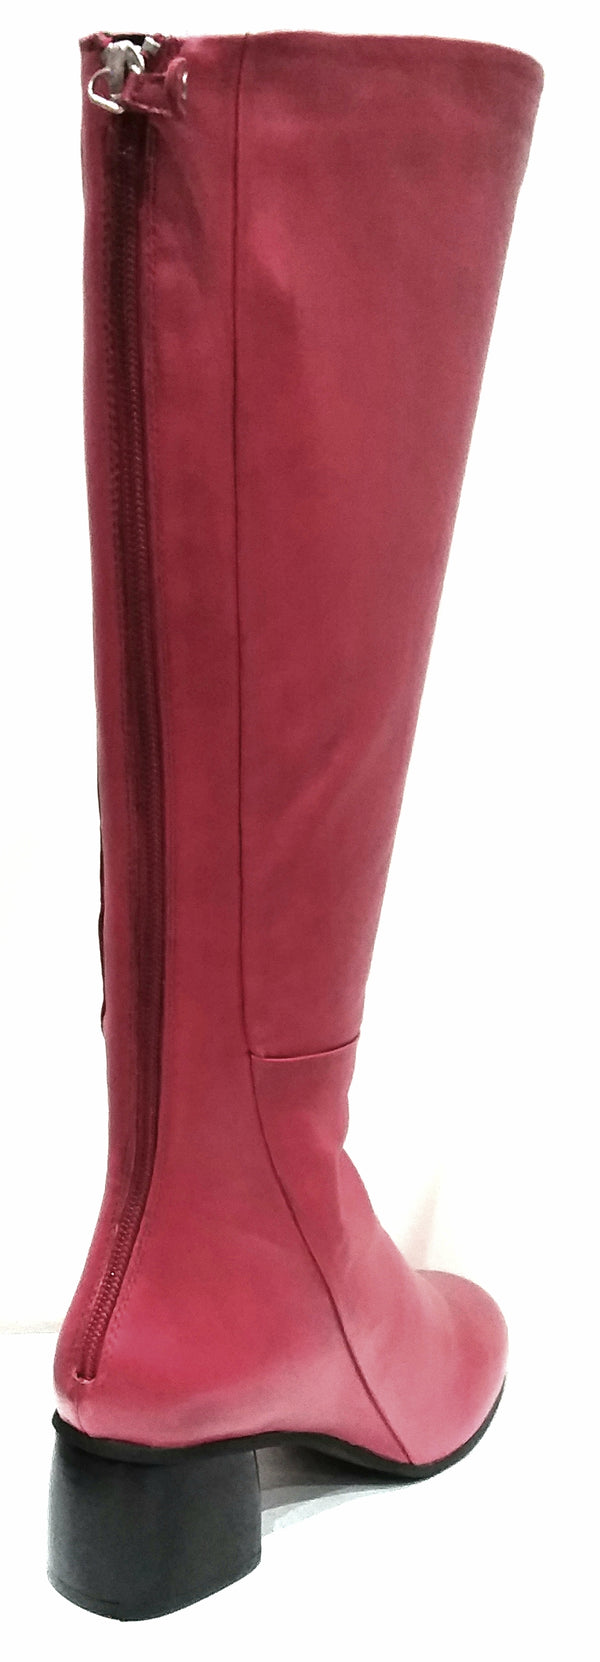 Nordic - Muted Red Knee Length Boot by Martini Marco